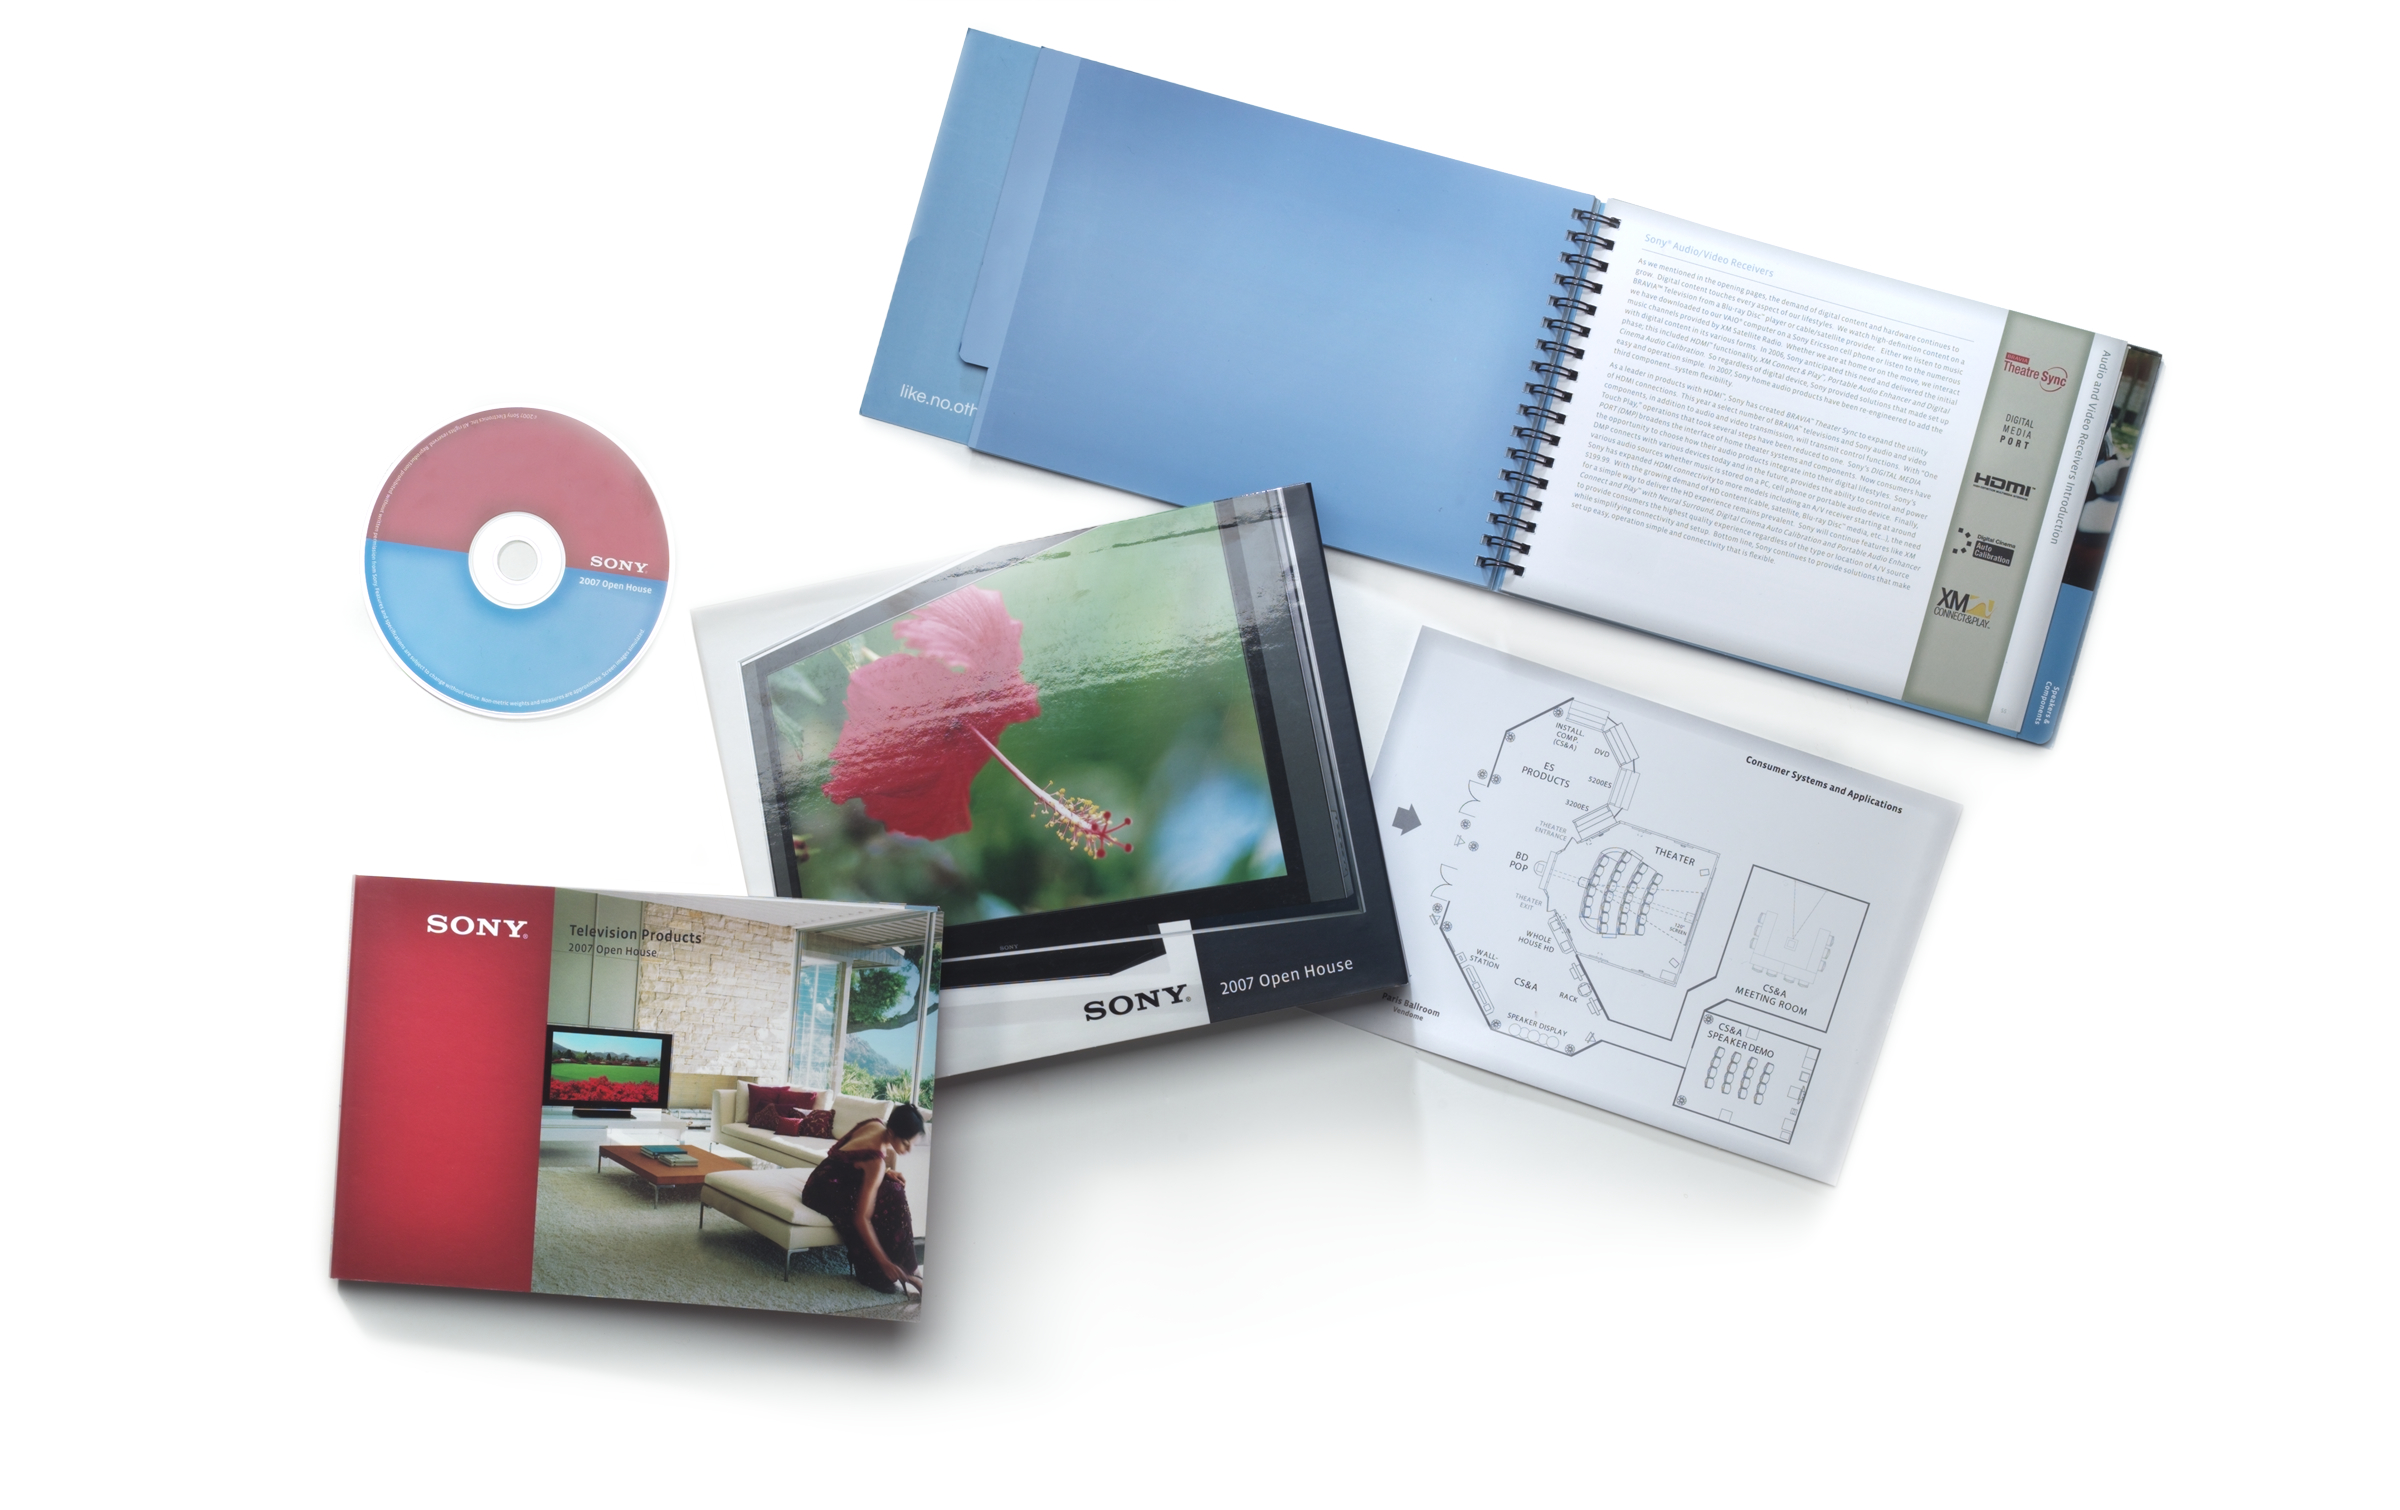 Sony Electronics Open House Sales Kit, 2009, Corporate Marketing Design